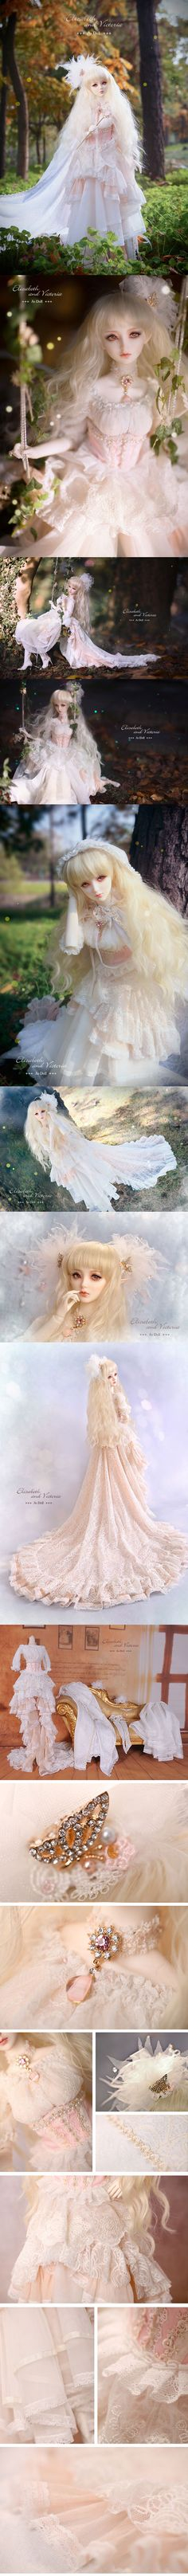 【Limited Edition】Bjd Clothes Girl Fantastic Dreamy fullset/Fairy Wing CL3140829 for SD Ball-jointed Doll_SD_SD_CLOTHING_Ball Jointed Dolls (BJD) company-Legenddoll